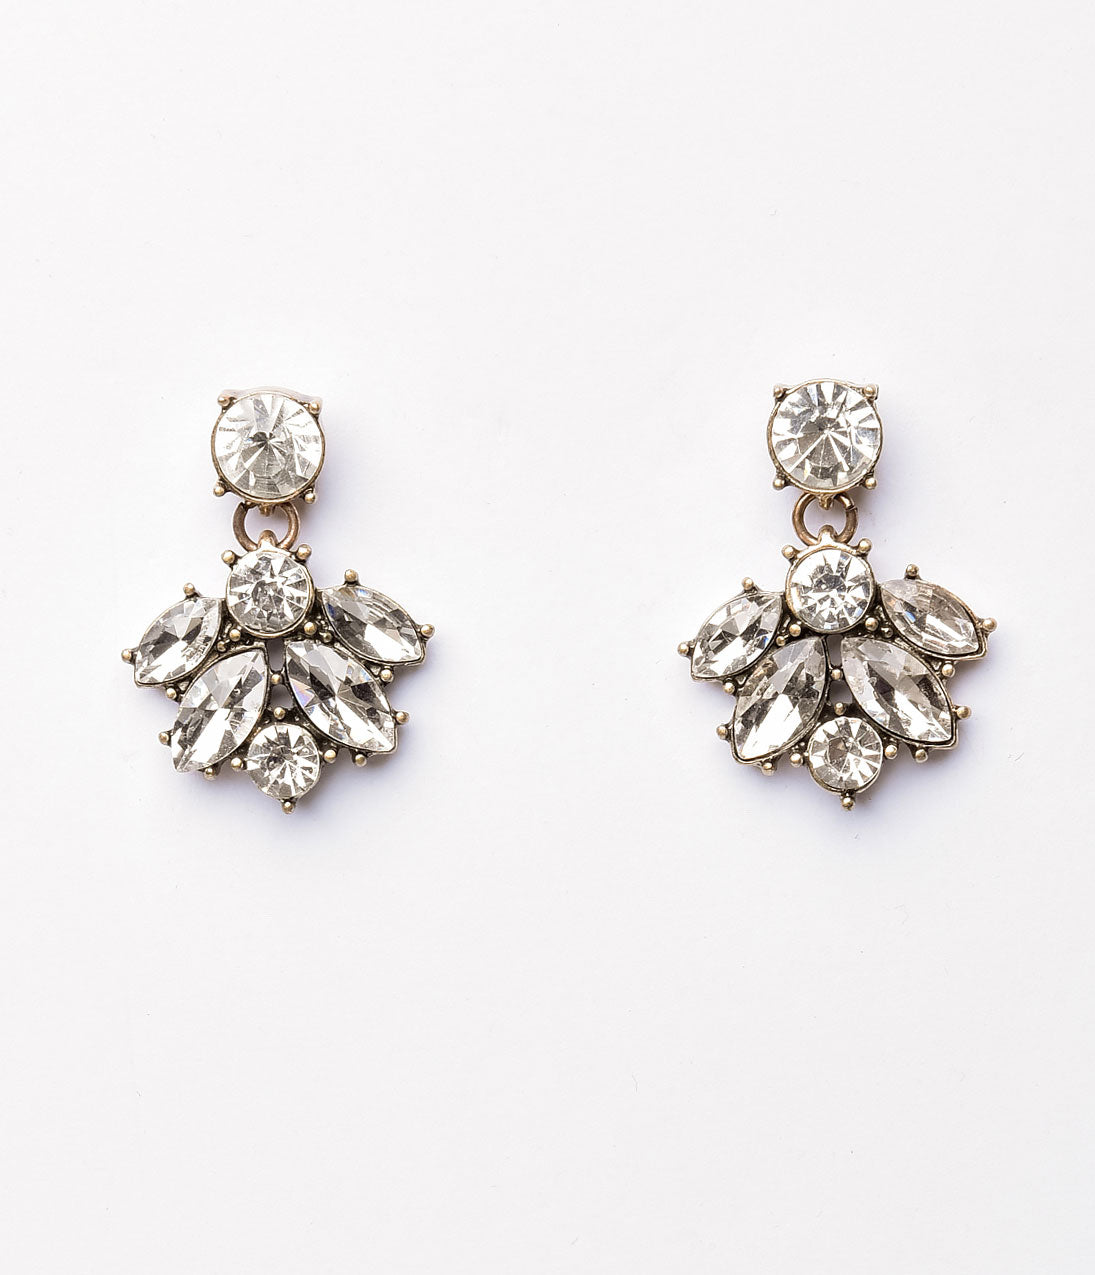 1930s Jewelry | Art Deco Style Jewelry Gold  Silver Rhinestone Petal Dangle Post Earrings $24.00 AT vintagedancer.com